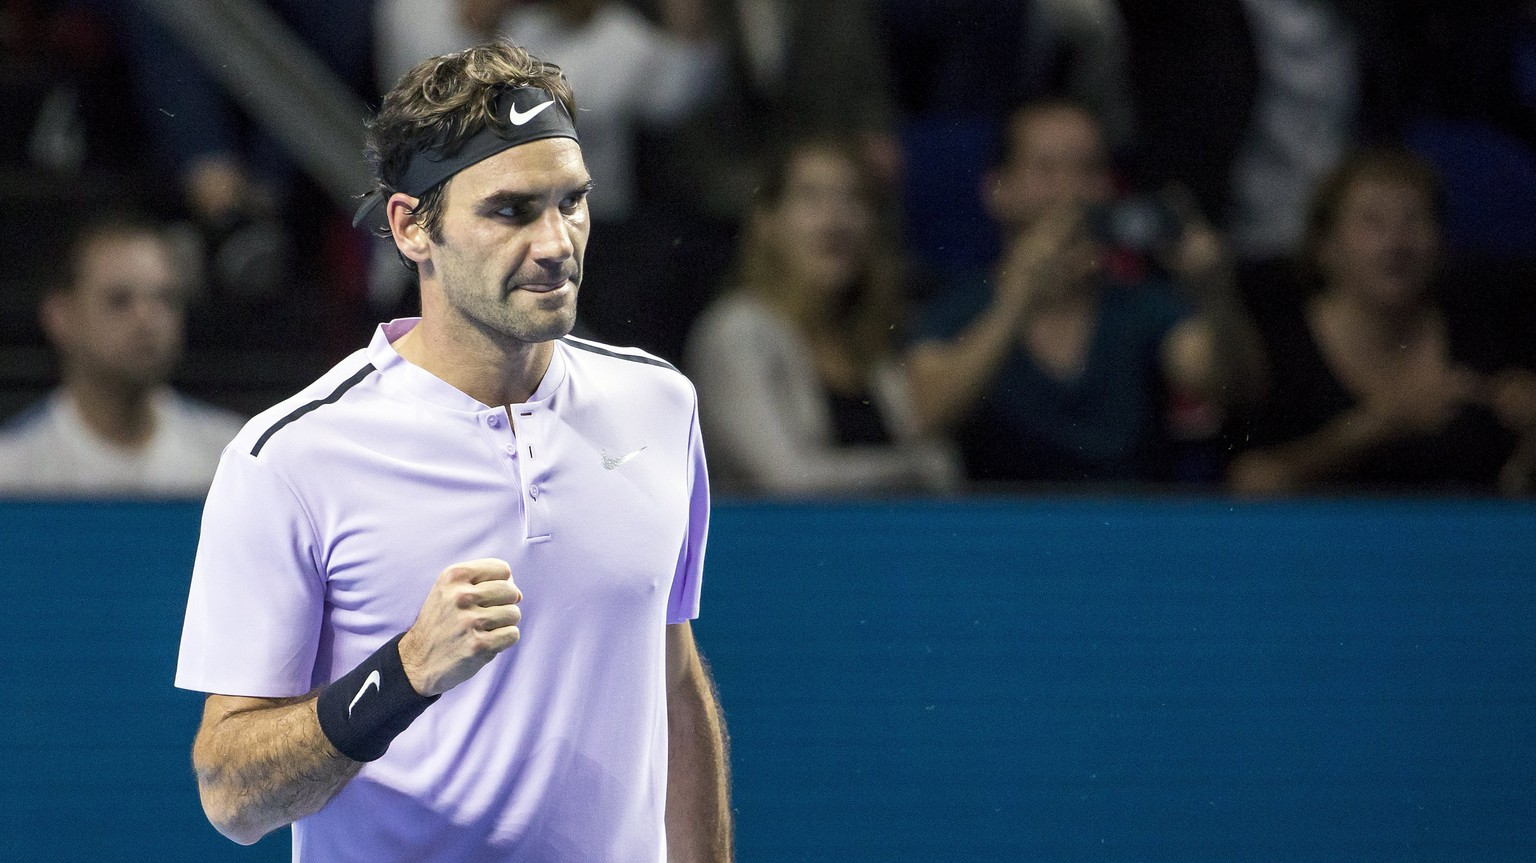 epa06293674 Switzerland's Roger Federer reacts after winning his quarter final match against France's Adrian Mannarino at the Swiss Indoors tennis tournament at the St. Jakobshalle in Basel, Switzerland, 27 October 2017.  EPA/ALEXANDRA WEY